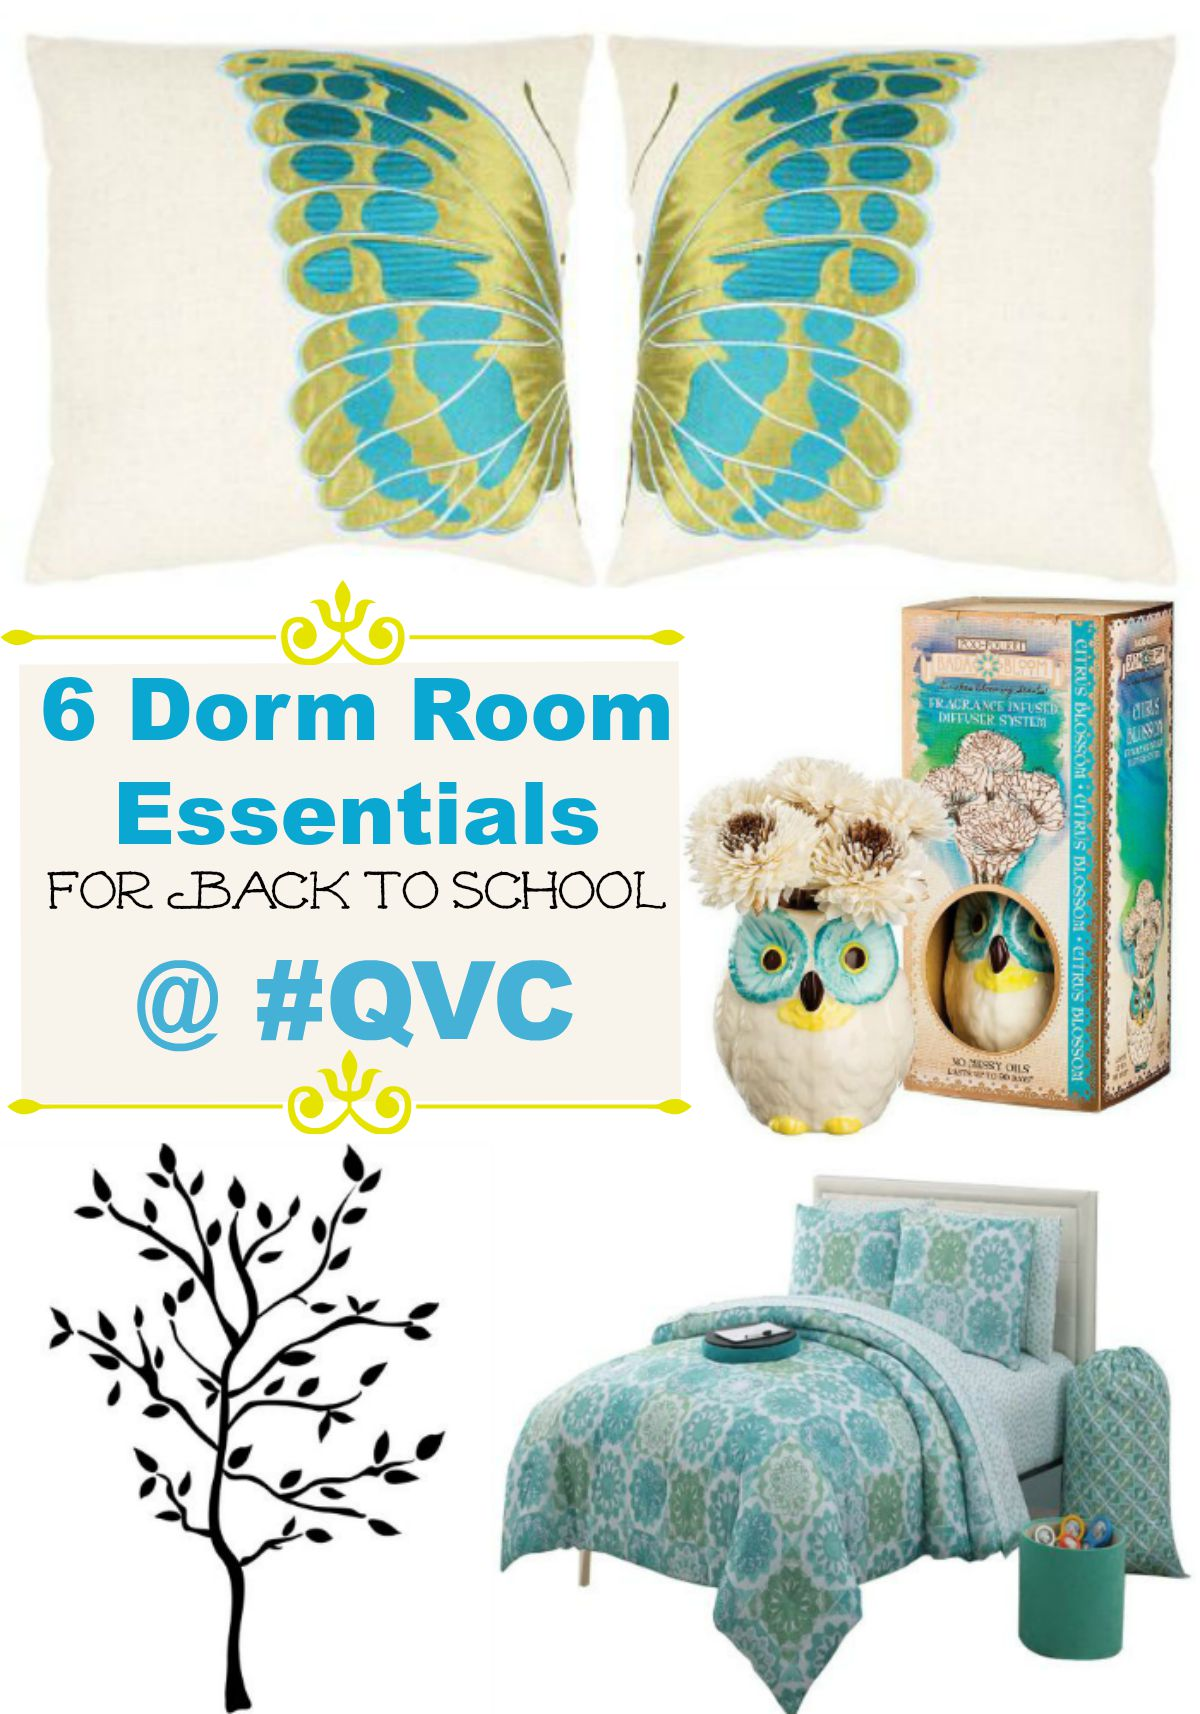 Get fabulous dorm room essentials on any budget at QVC with their QCard that lets you spread the cost over three monthly payments! Check out our favorites!